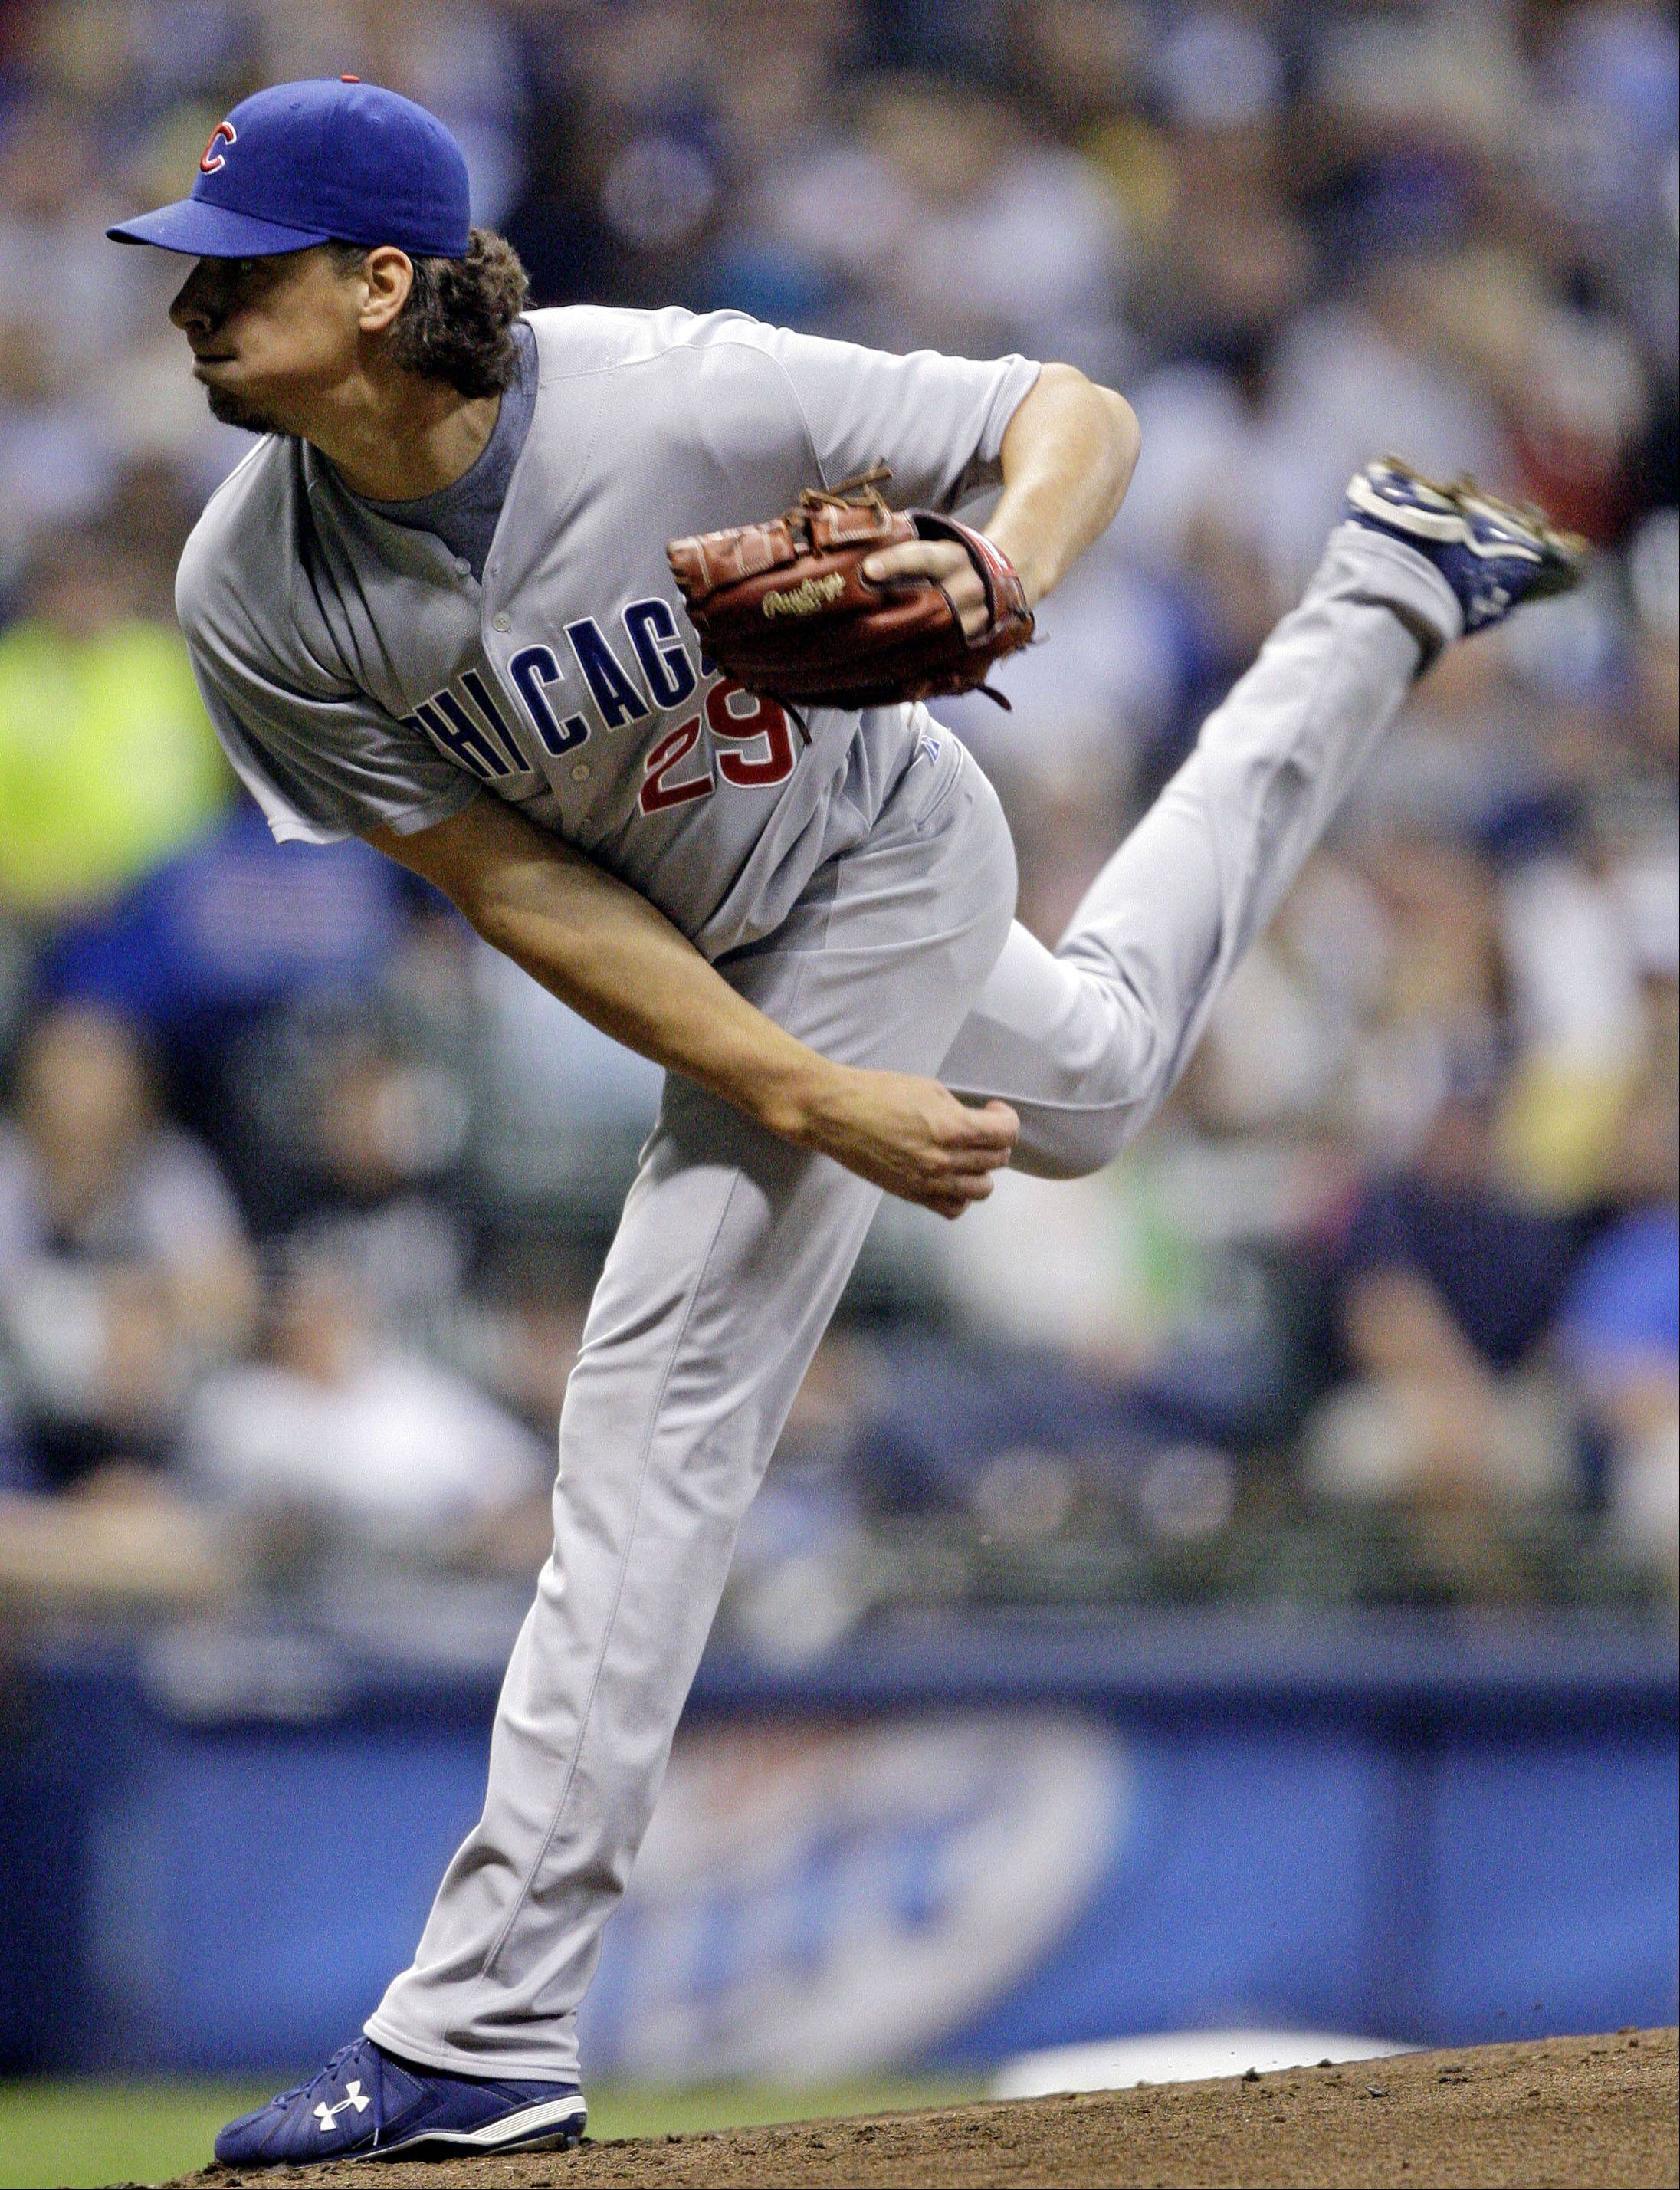 Samardzija hopes new direction leads to Cubs rotation